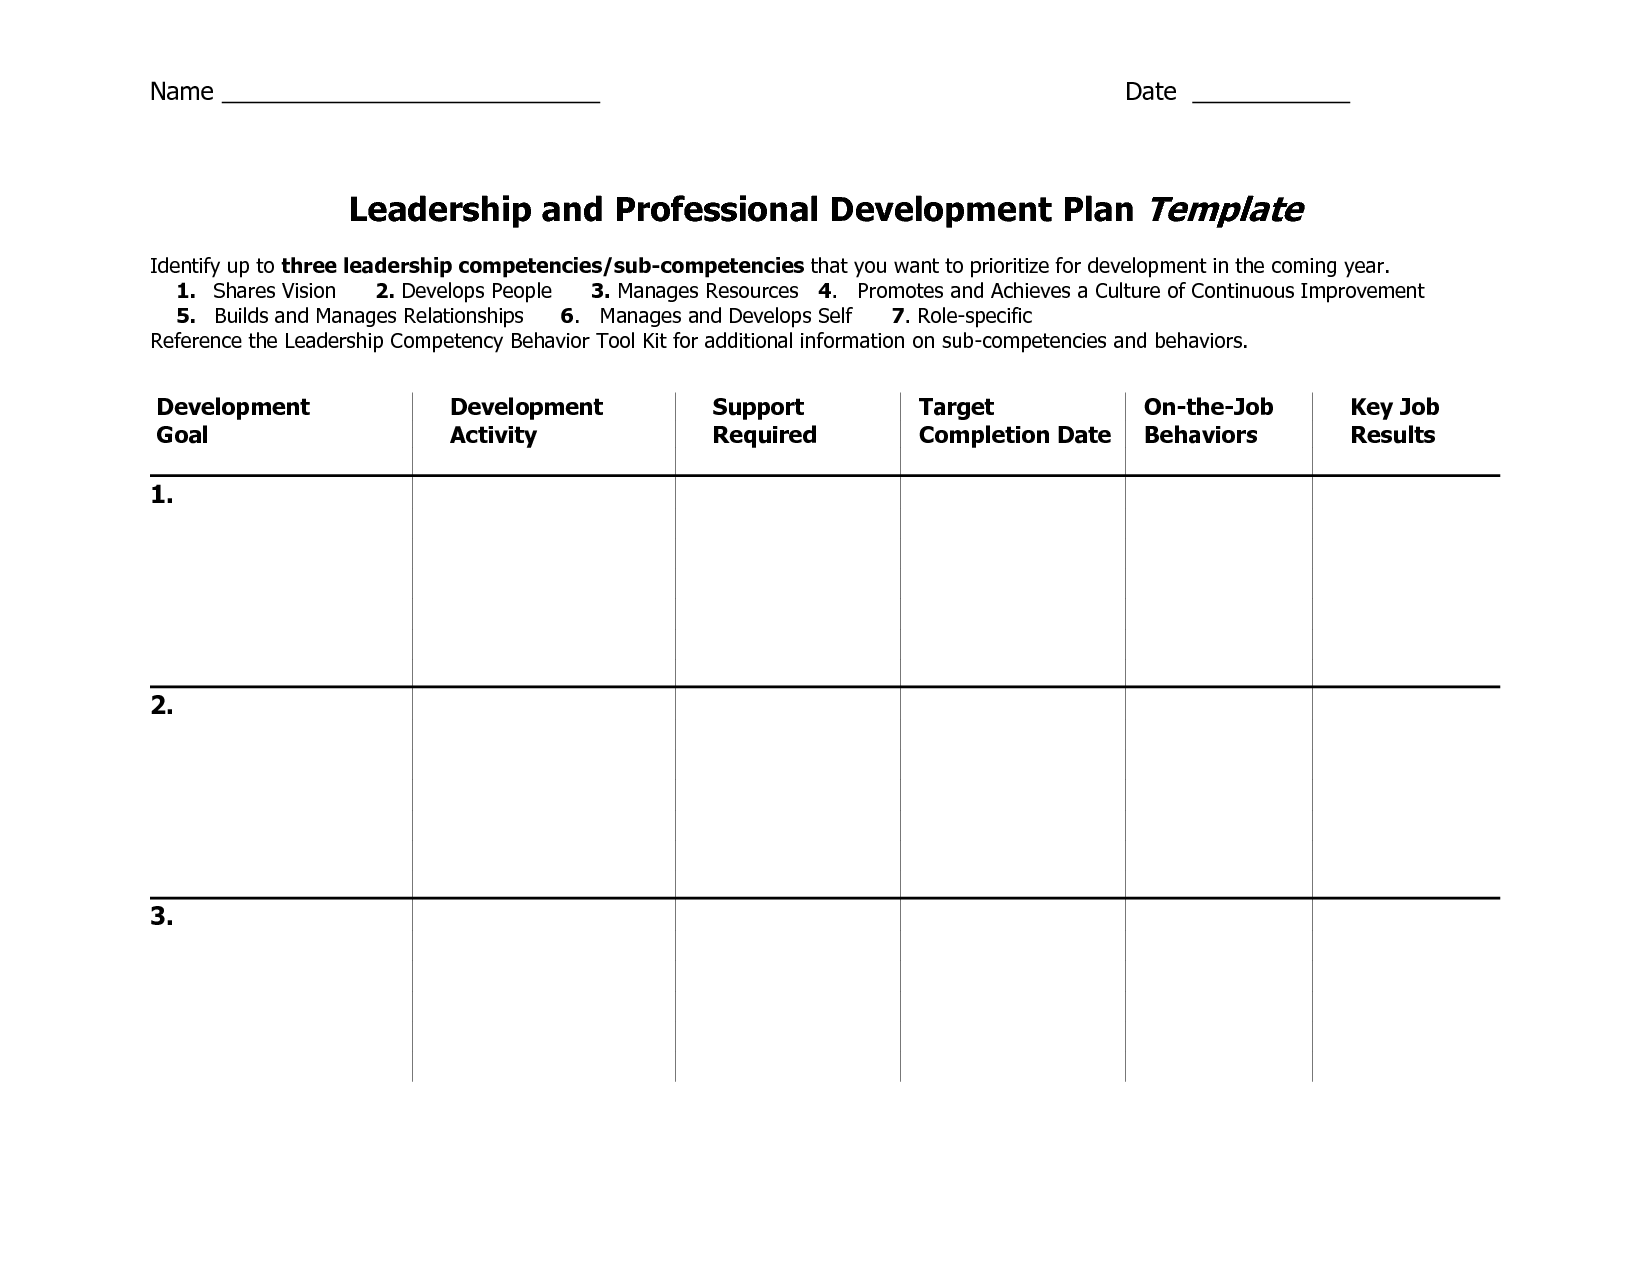 Individual Development Plan Template Word Google Search Professional Development Plan Personal Development Plan Template Personal Development Plan